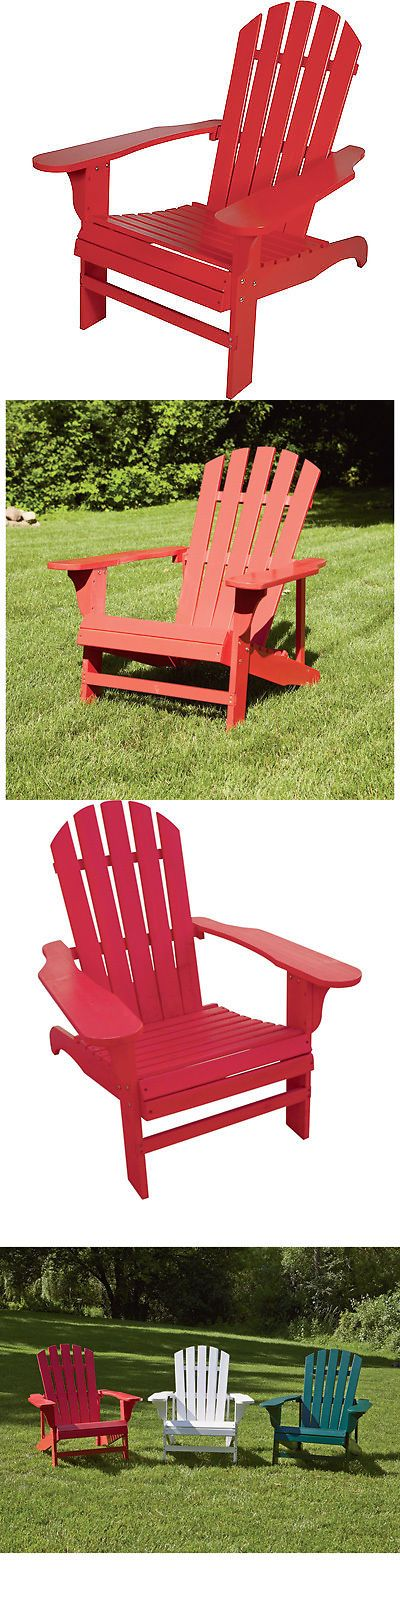 Chairs 79682: Classic Red Painted Wood Adirondack Chair -> BUY IT NOW ONLY: $59.99 on eBay!